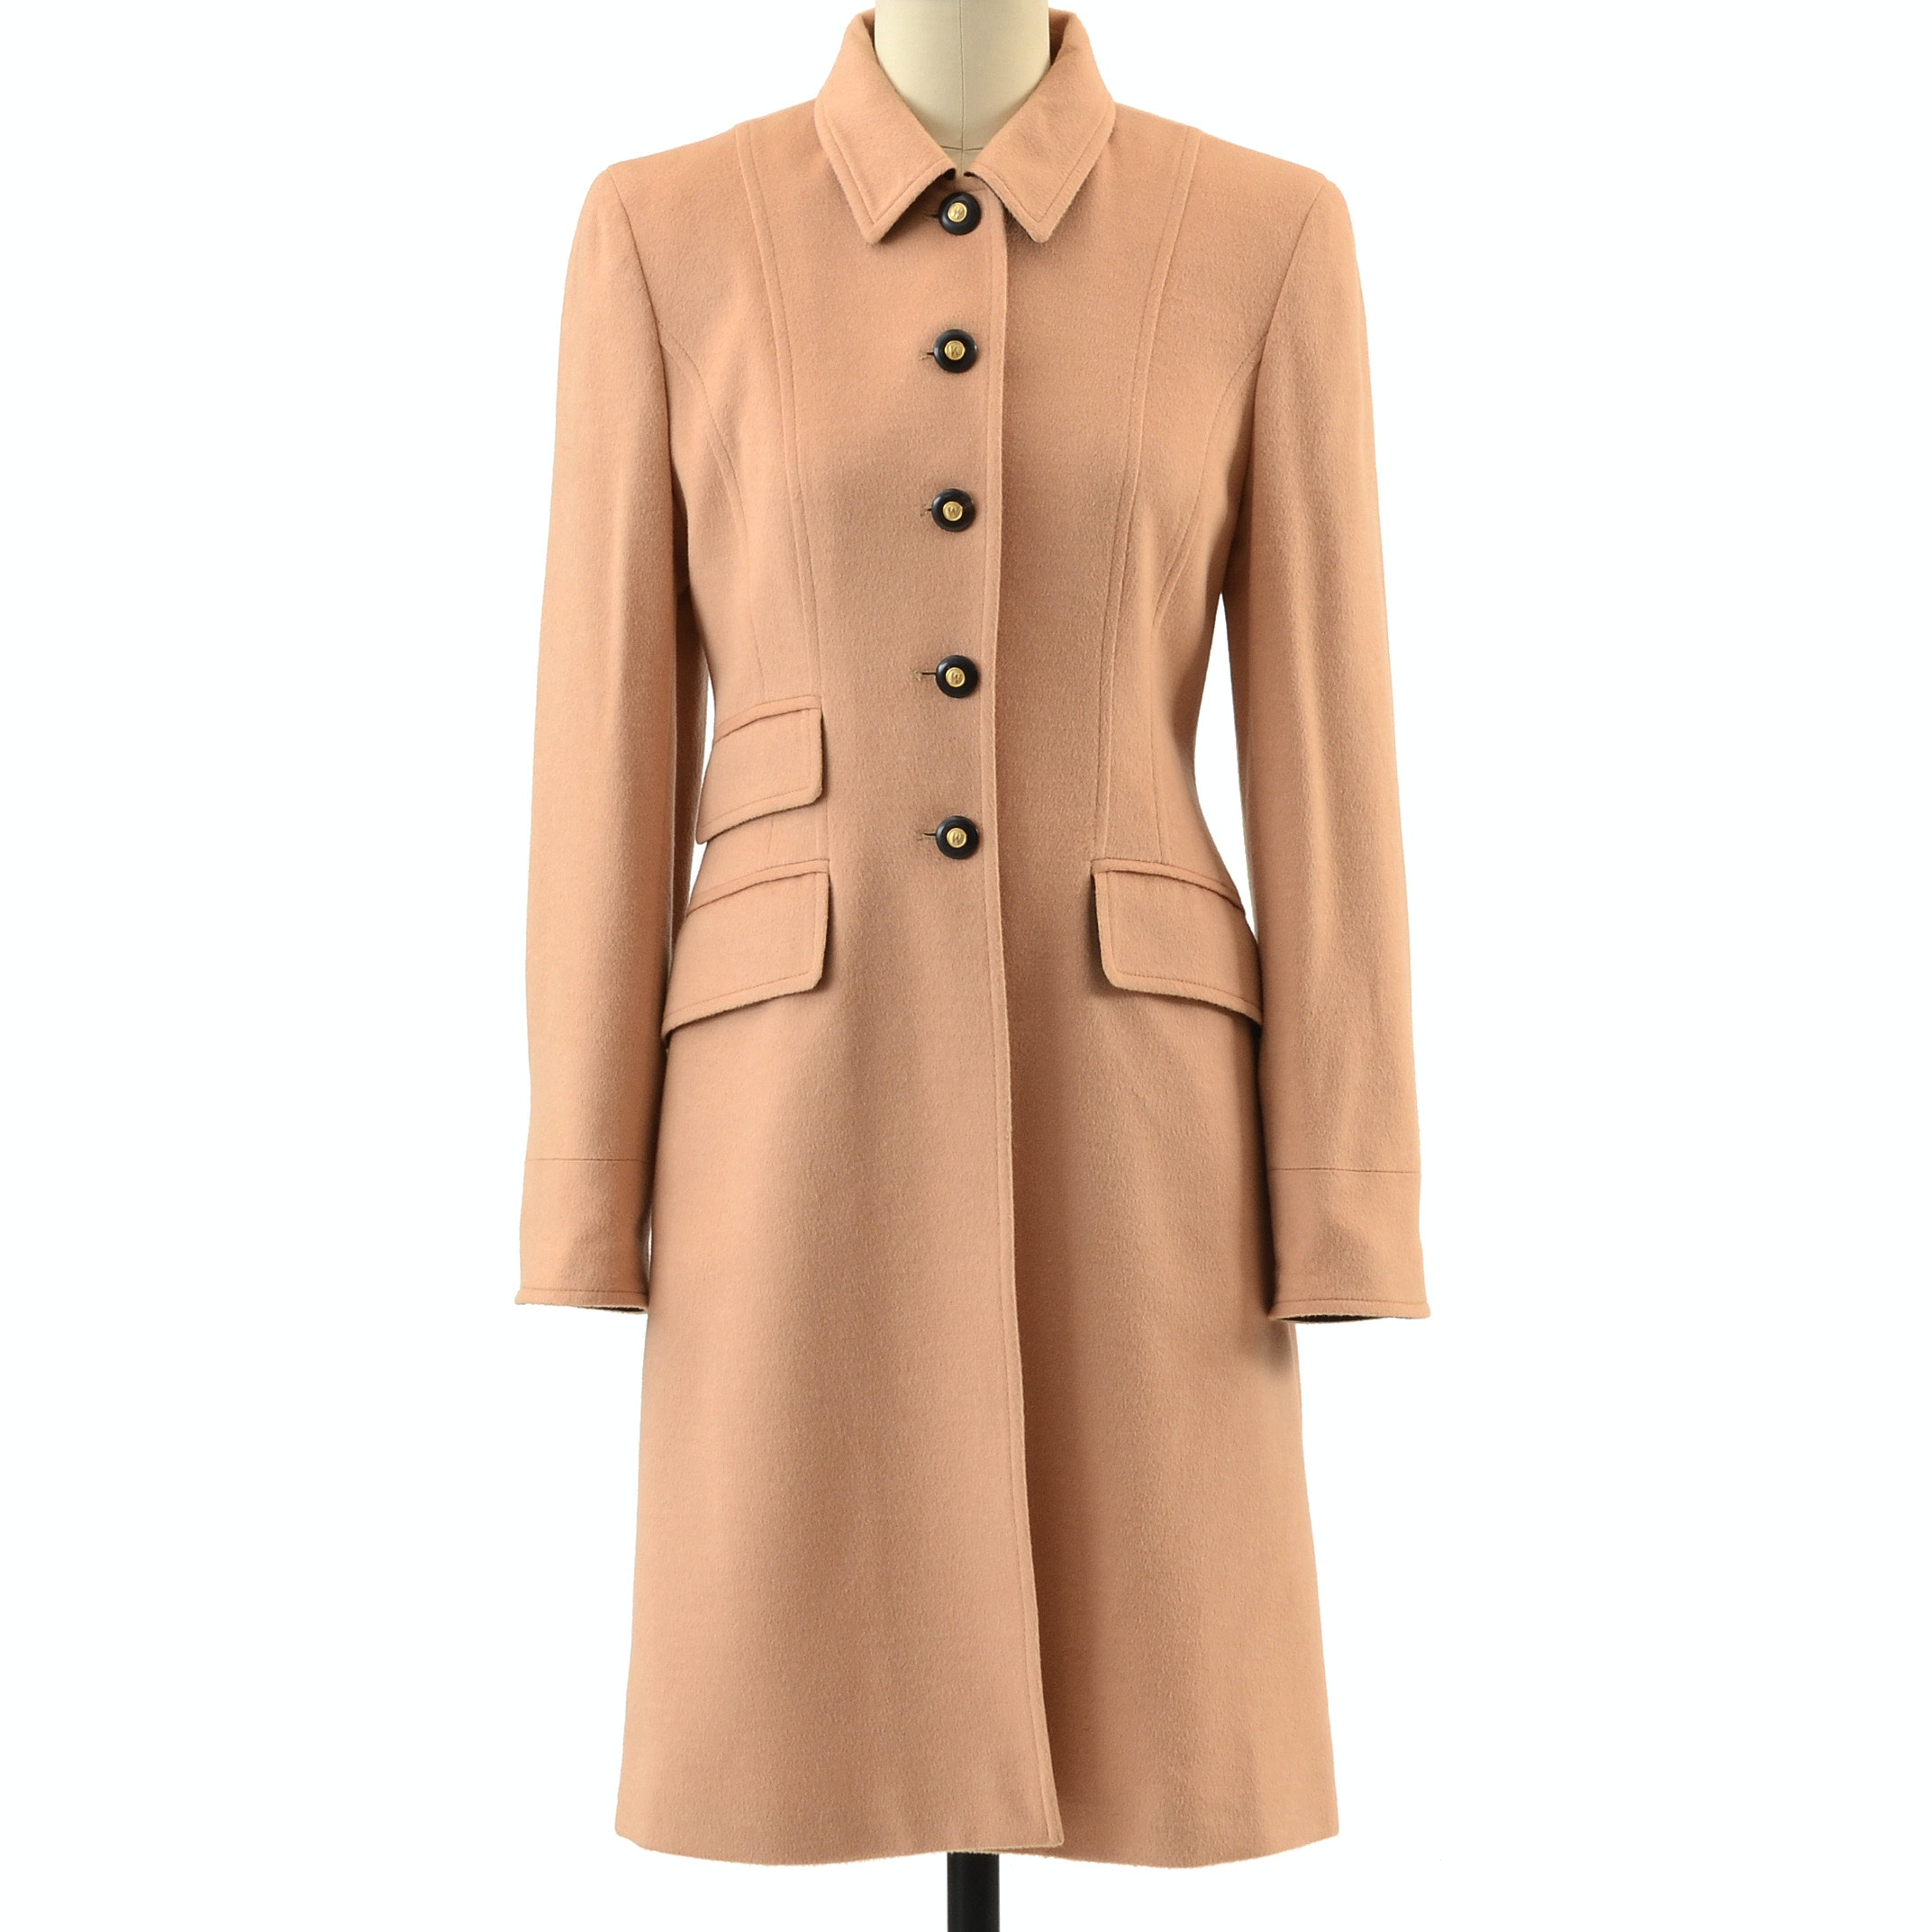 Wathne Cashmere and Angora Wool Blend Button Front Coat